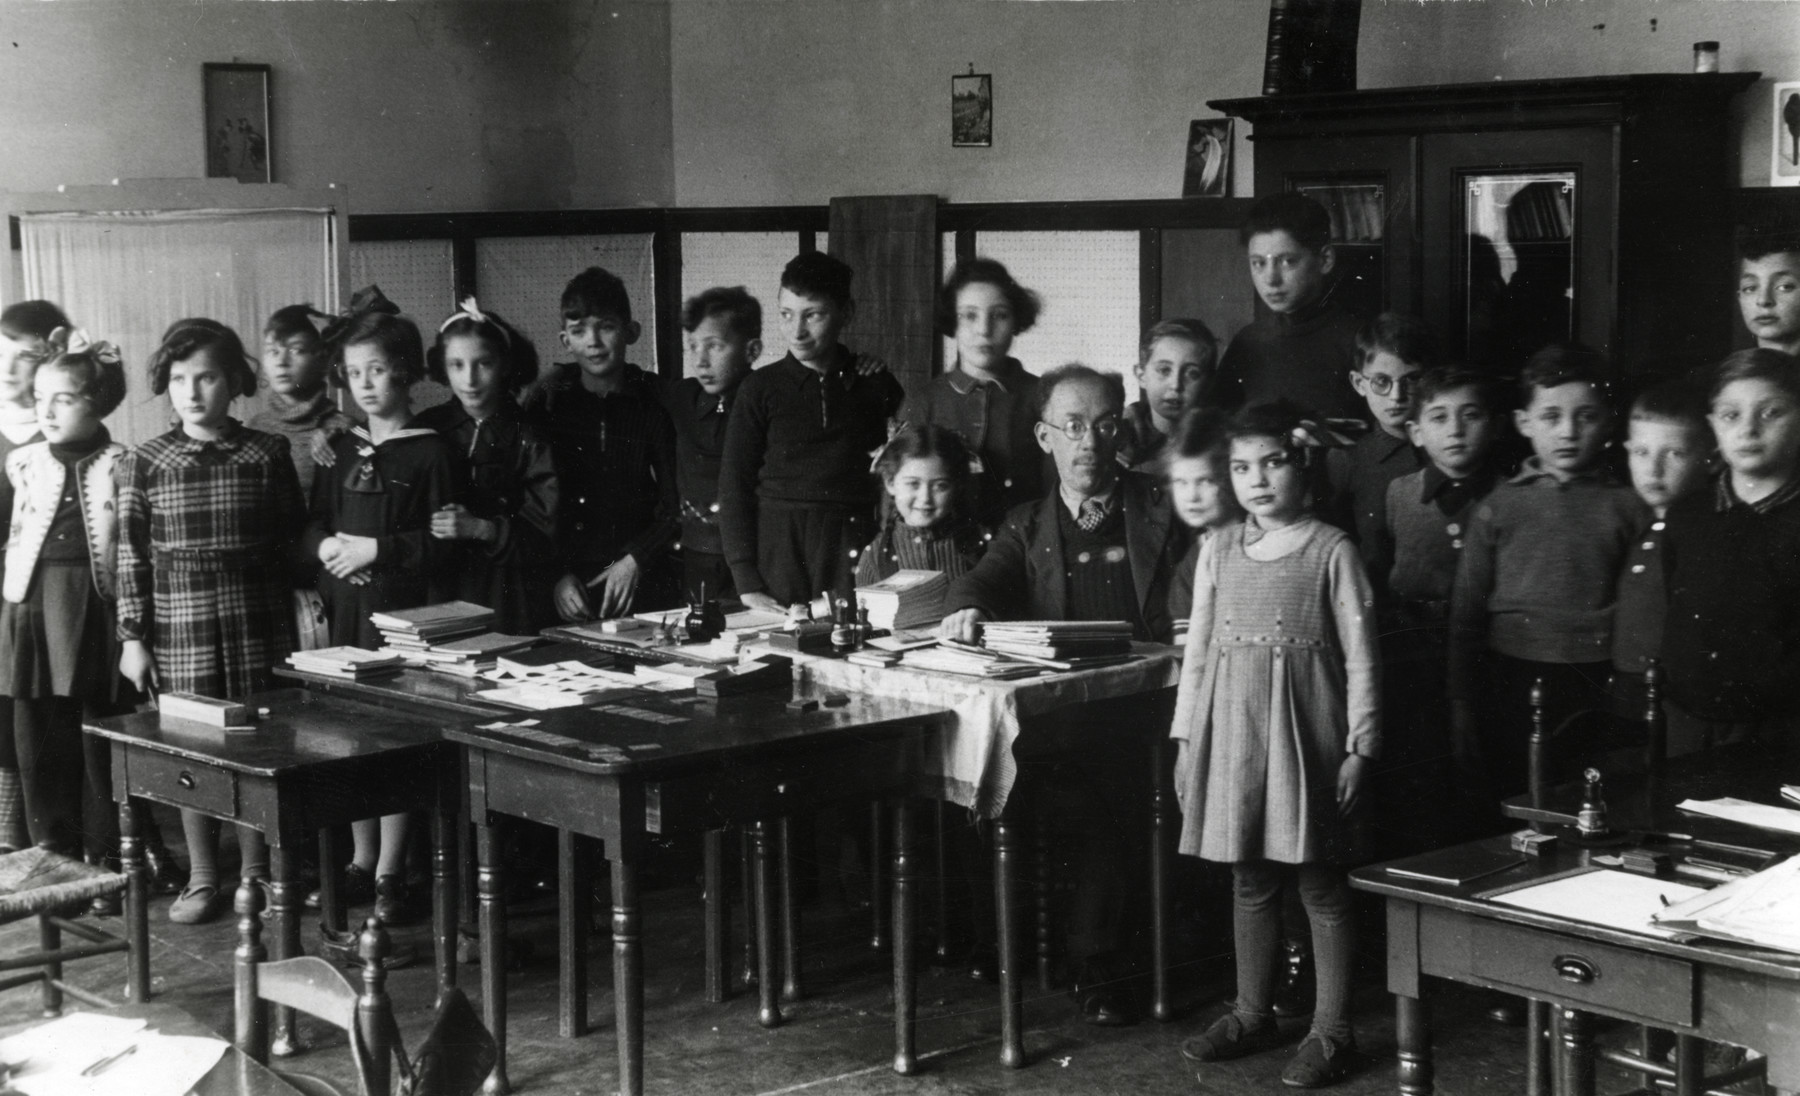 Class photograph of younger children in the Jewish school in Amsterdam.  Among those pictured is Hanan Kisch.  Very few of his classmates survived.